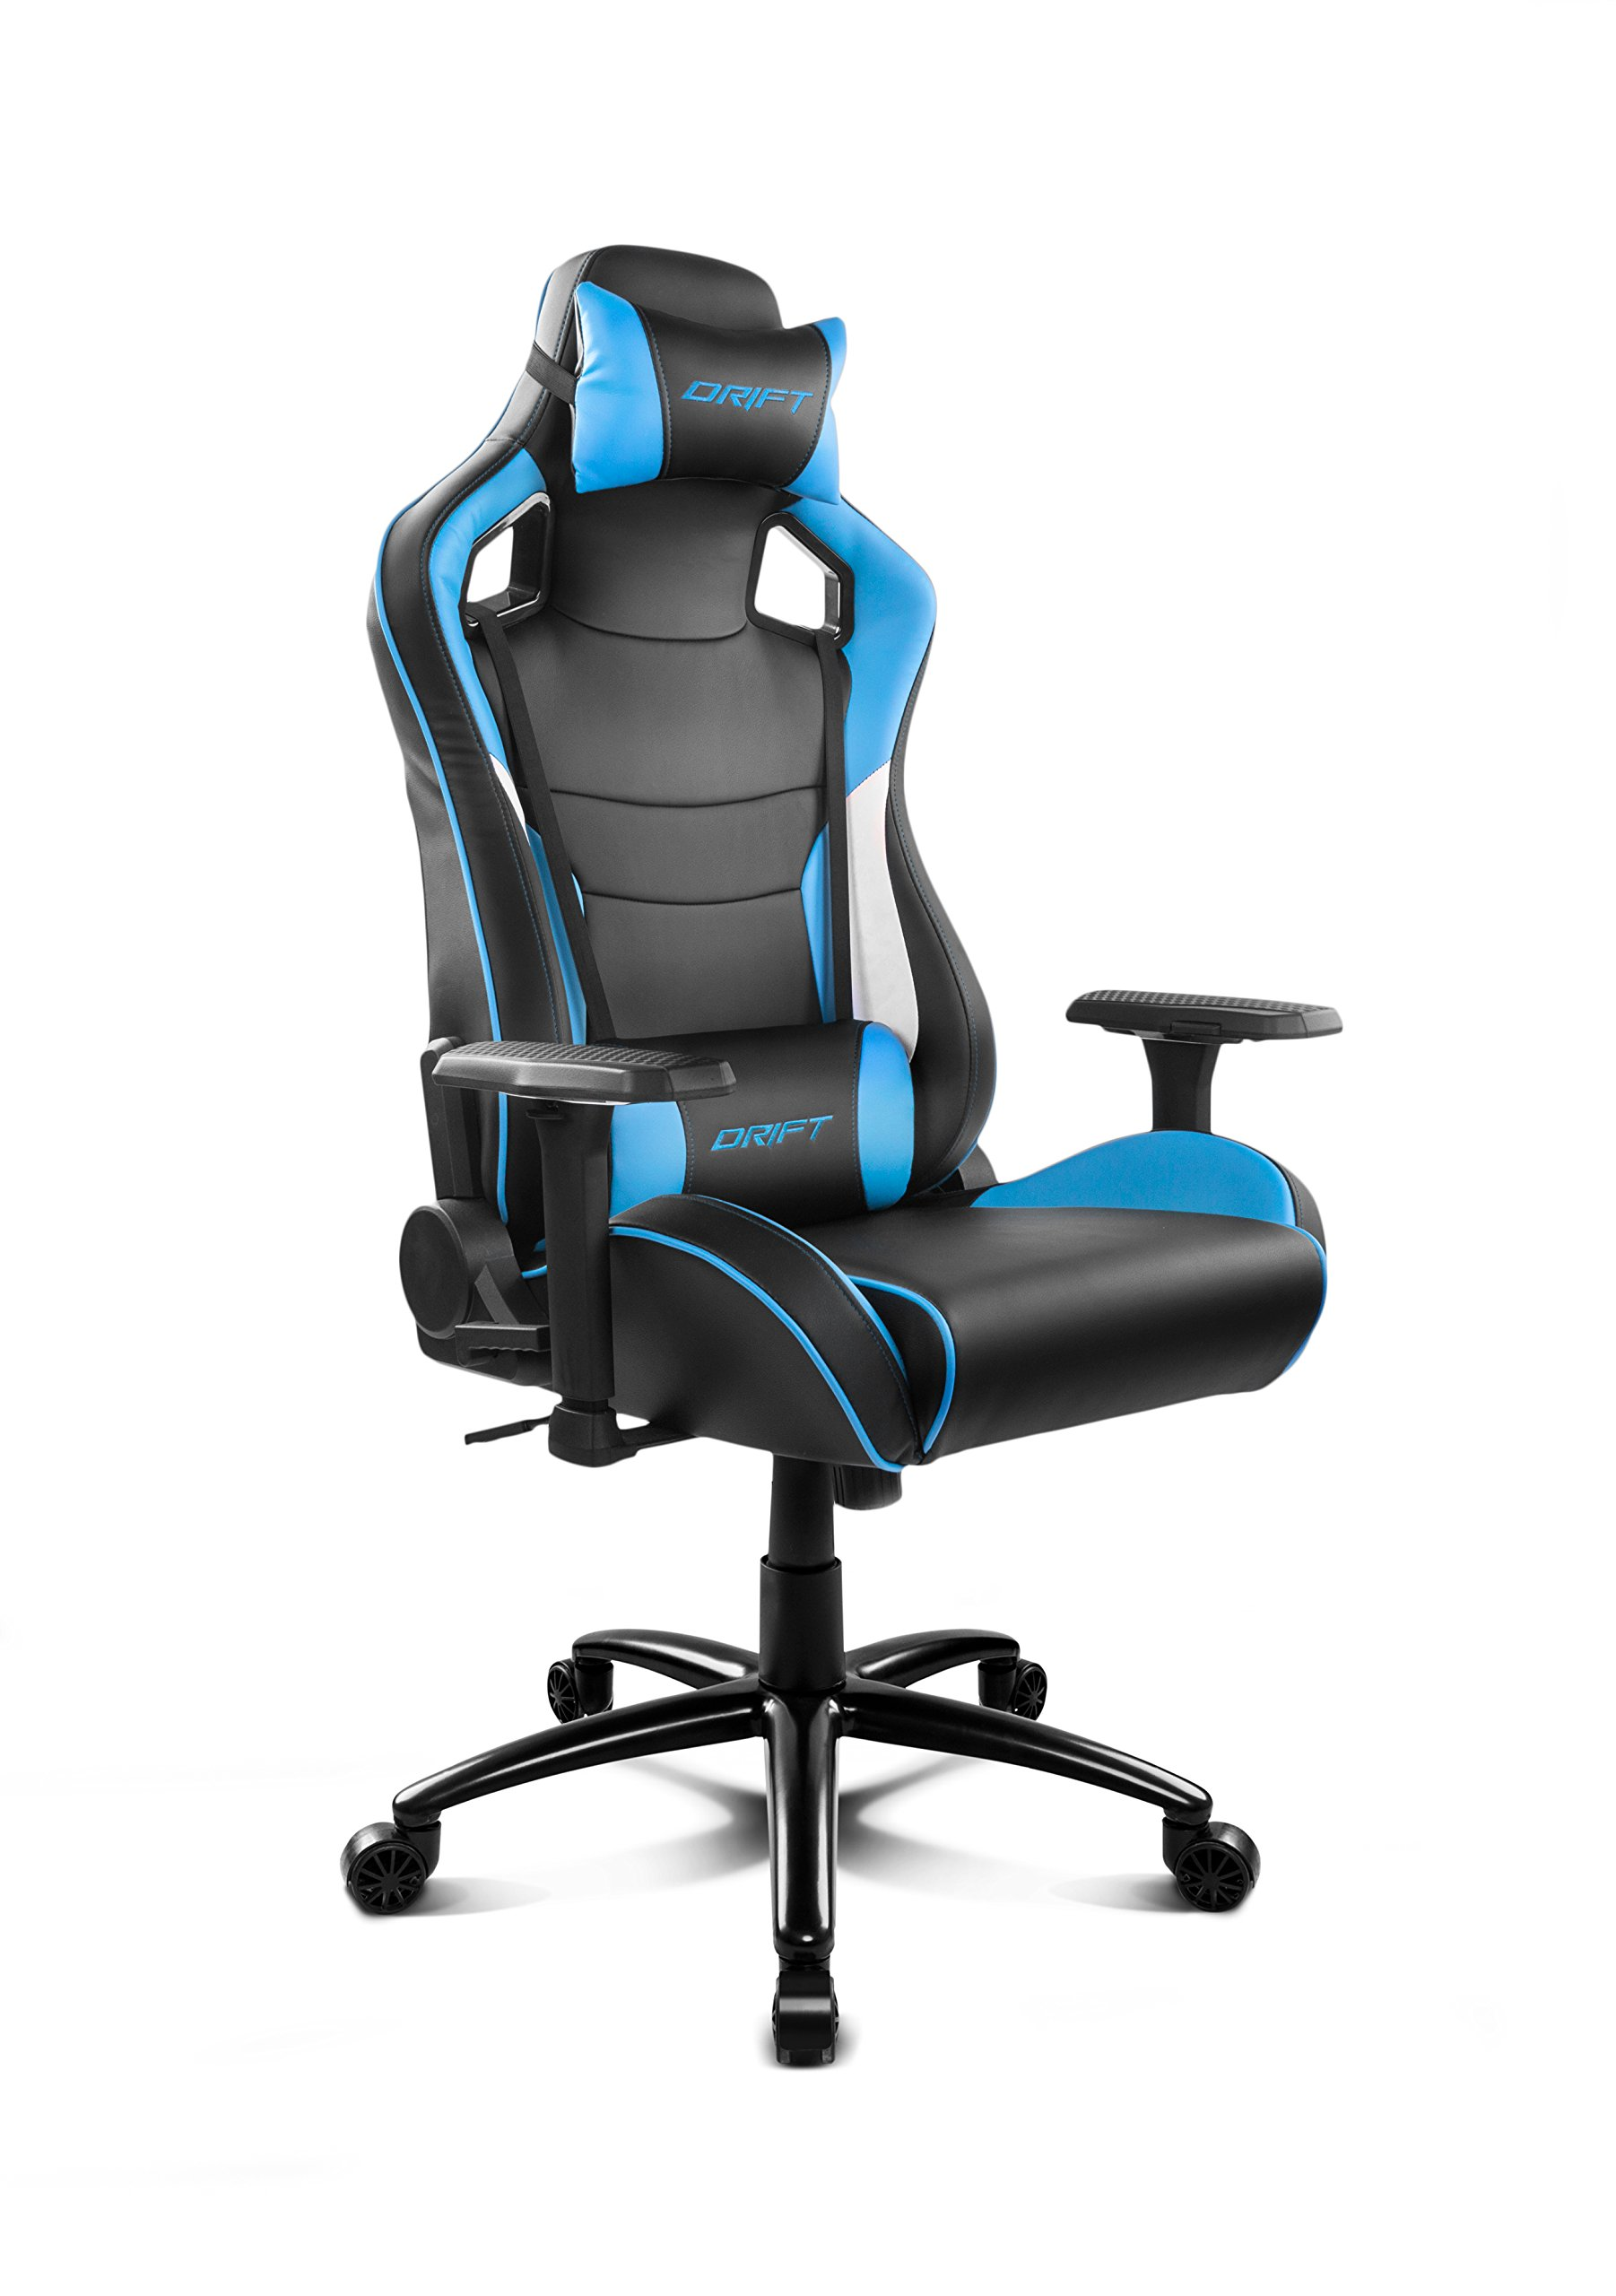 71Bh H83f9L - Drift DR400BL - Silla Gaming, Color Negro y Azul